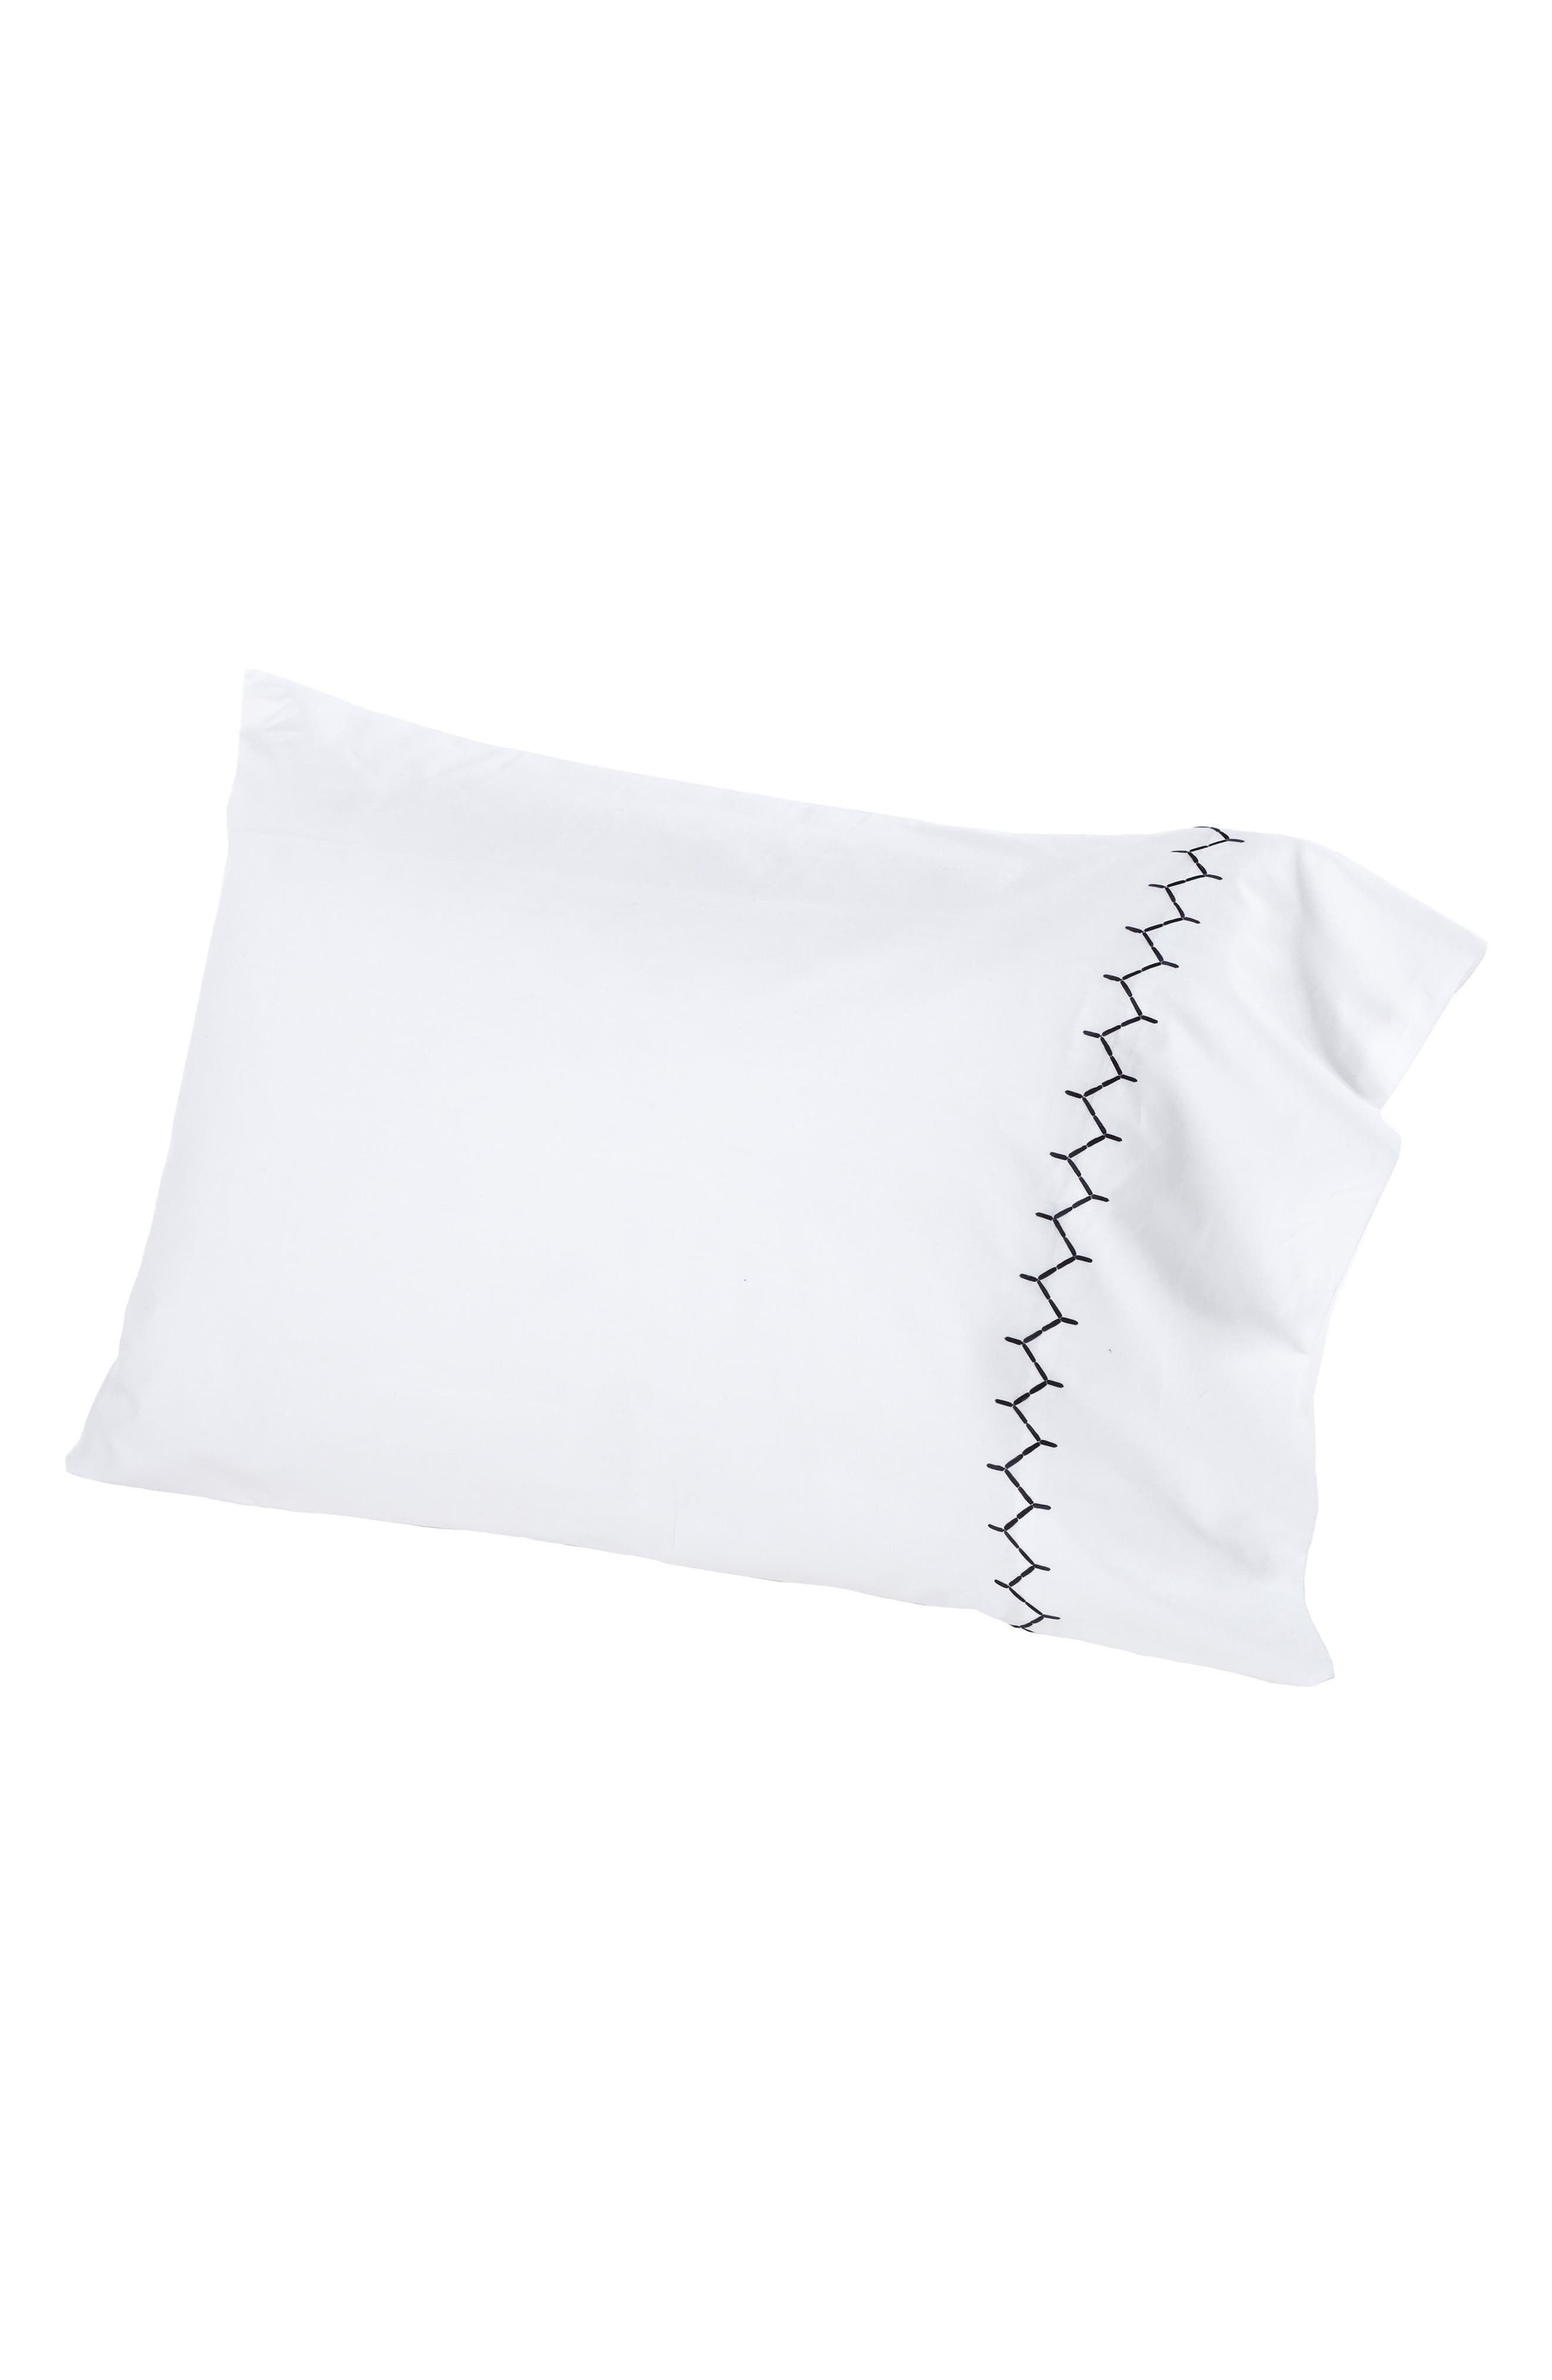 Stitched Set of 2 Combed Cotton Pillow Cases,                             Main thumbnail 1, color,                             100